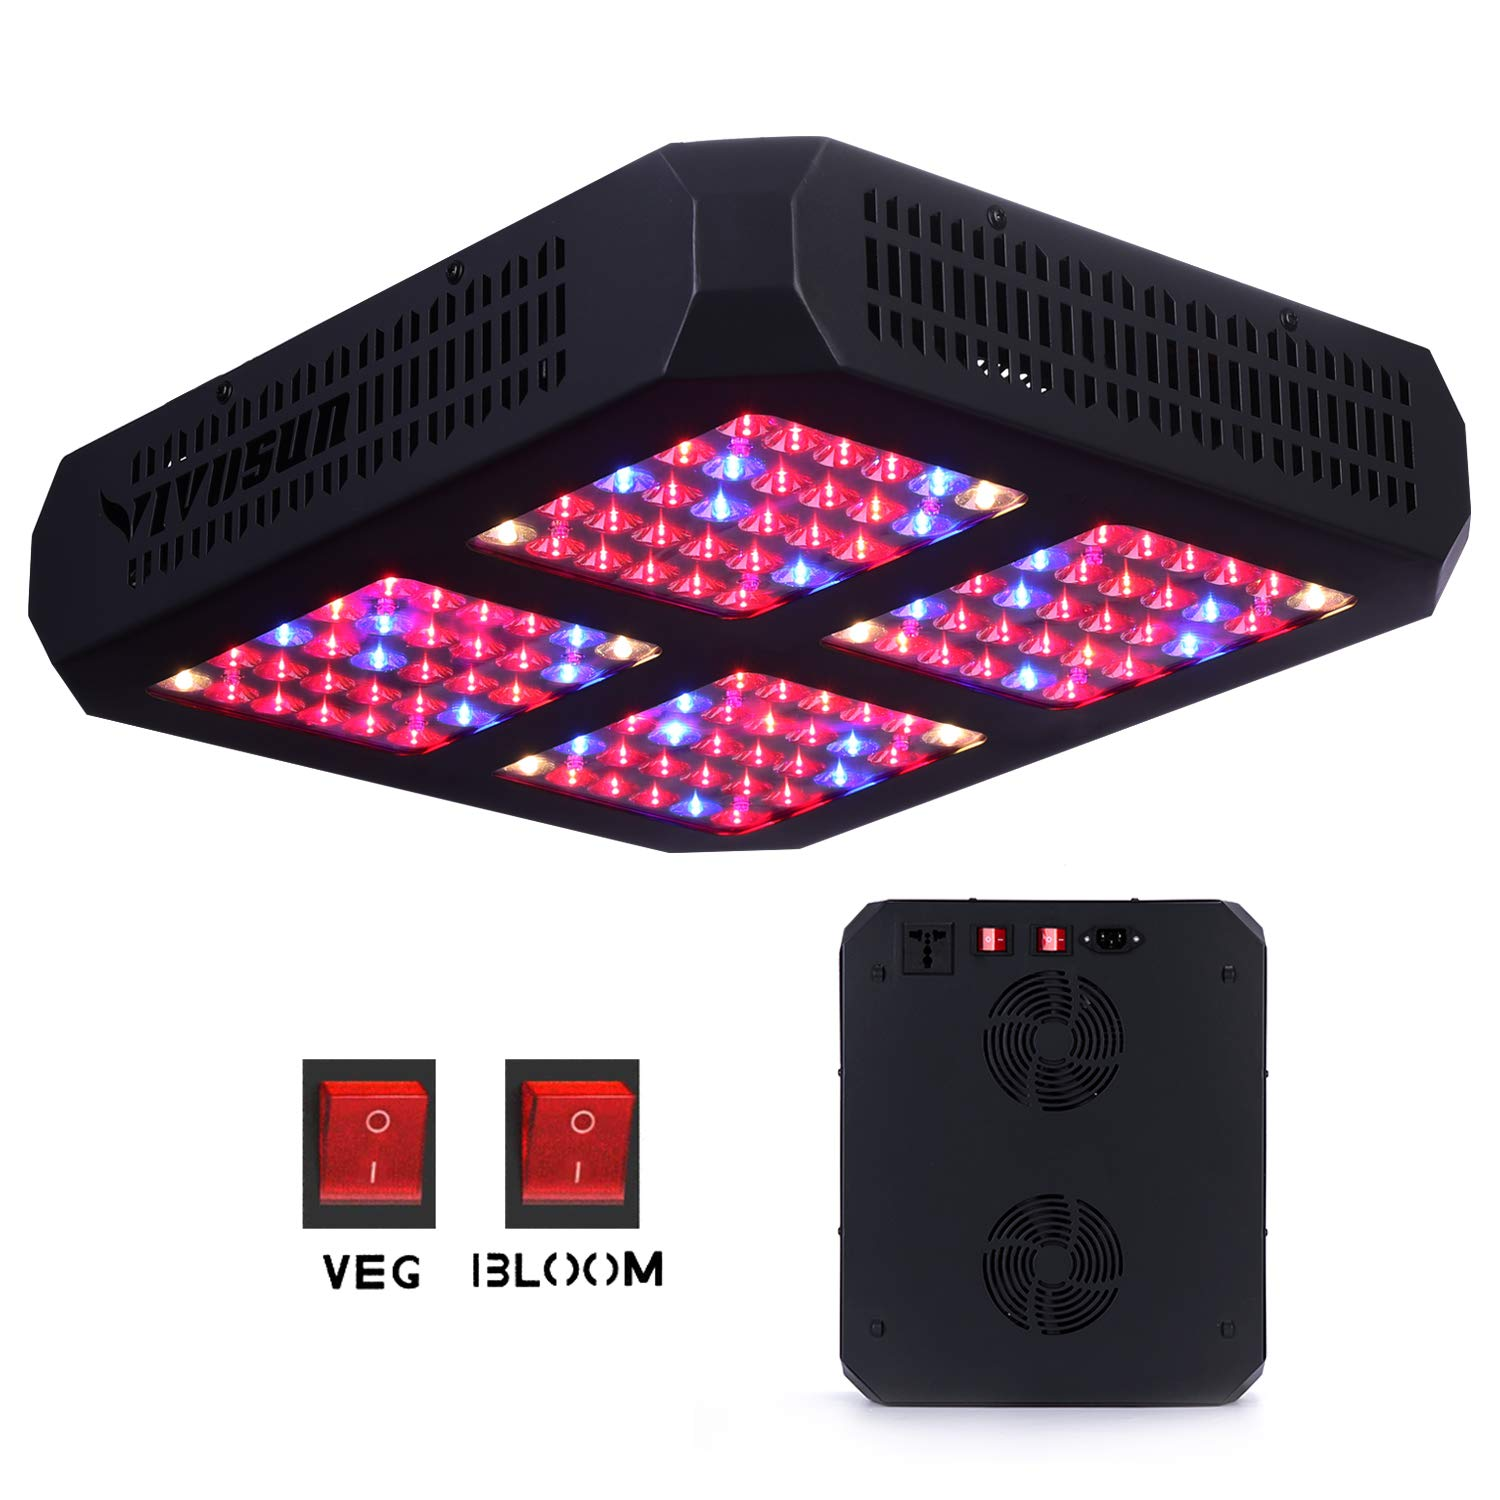 Vivosun 600 Watts Led Grow Light For Indoor Marijuana